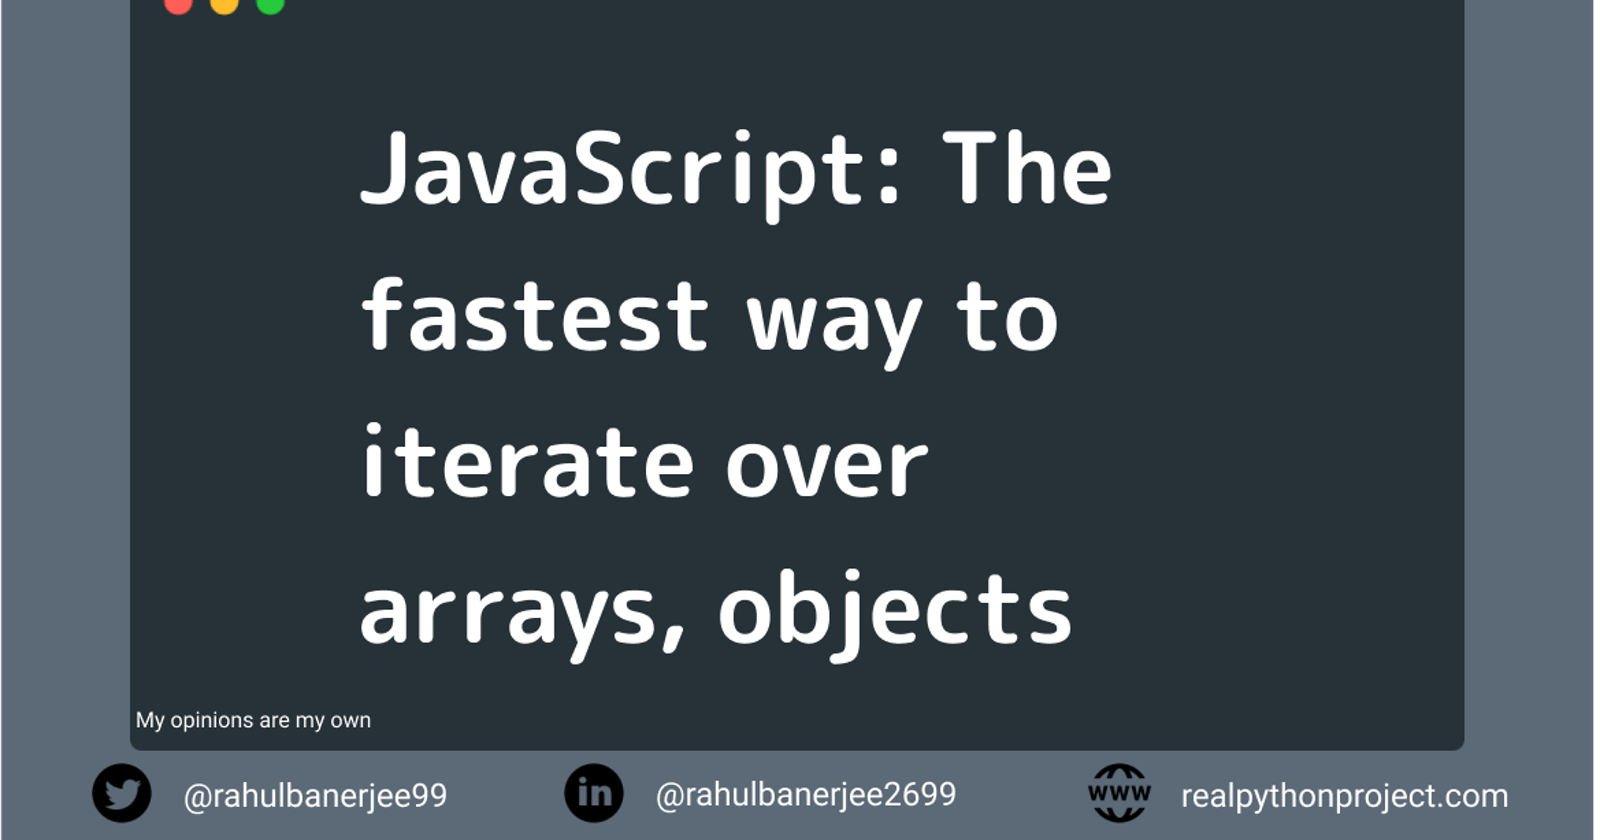 JavaScript: Do you know the fastest way to iterate over arrays, objects?